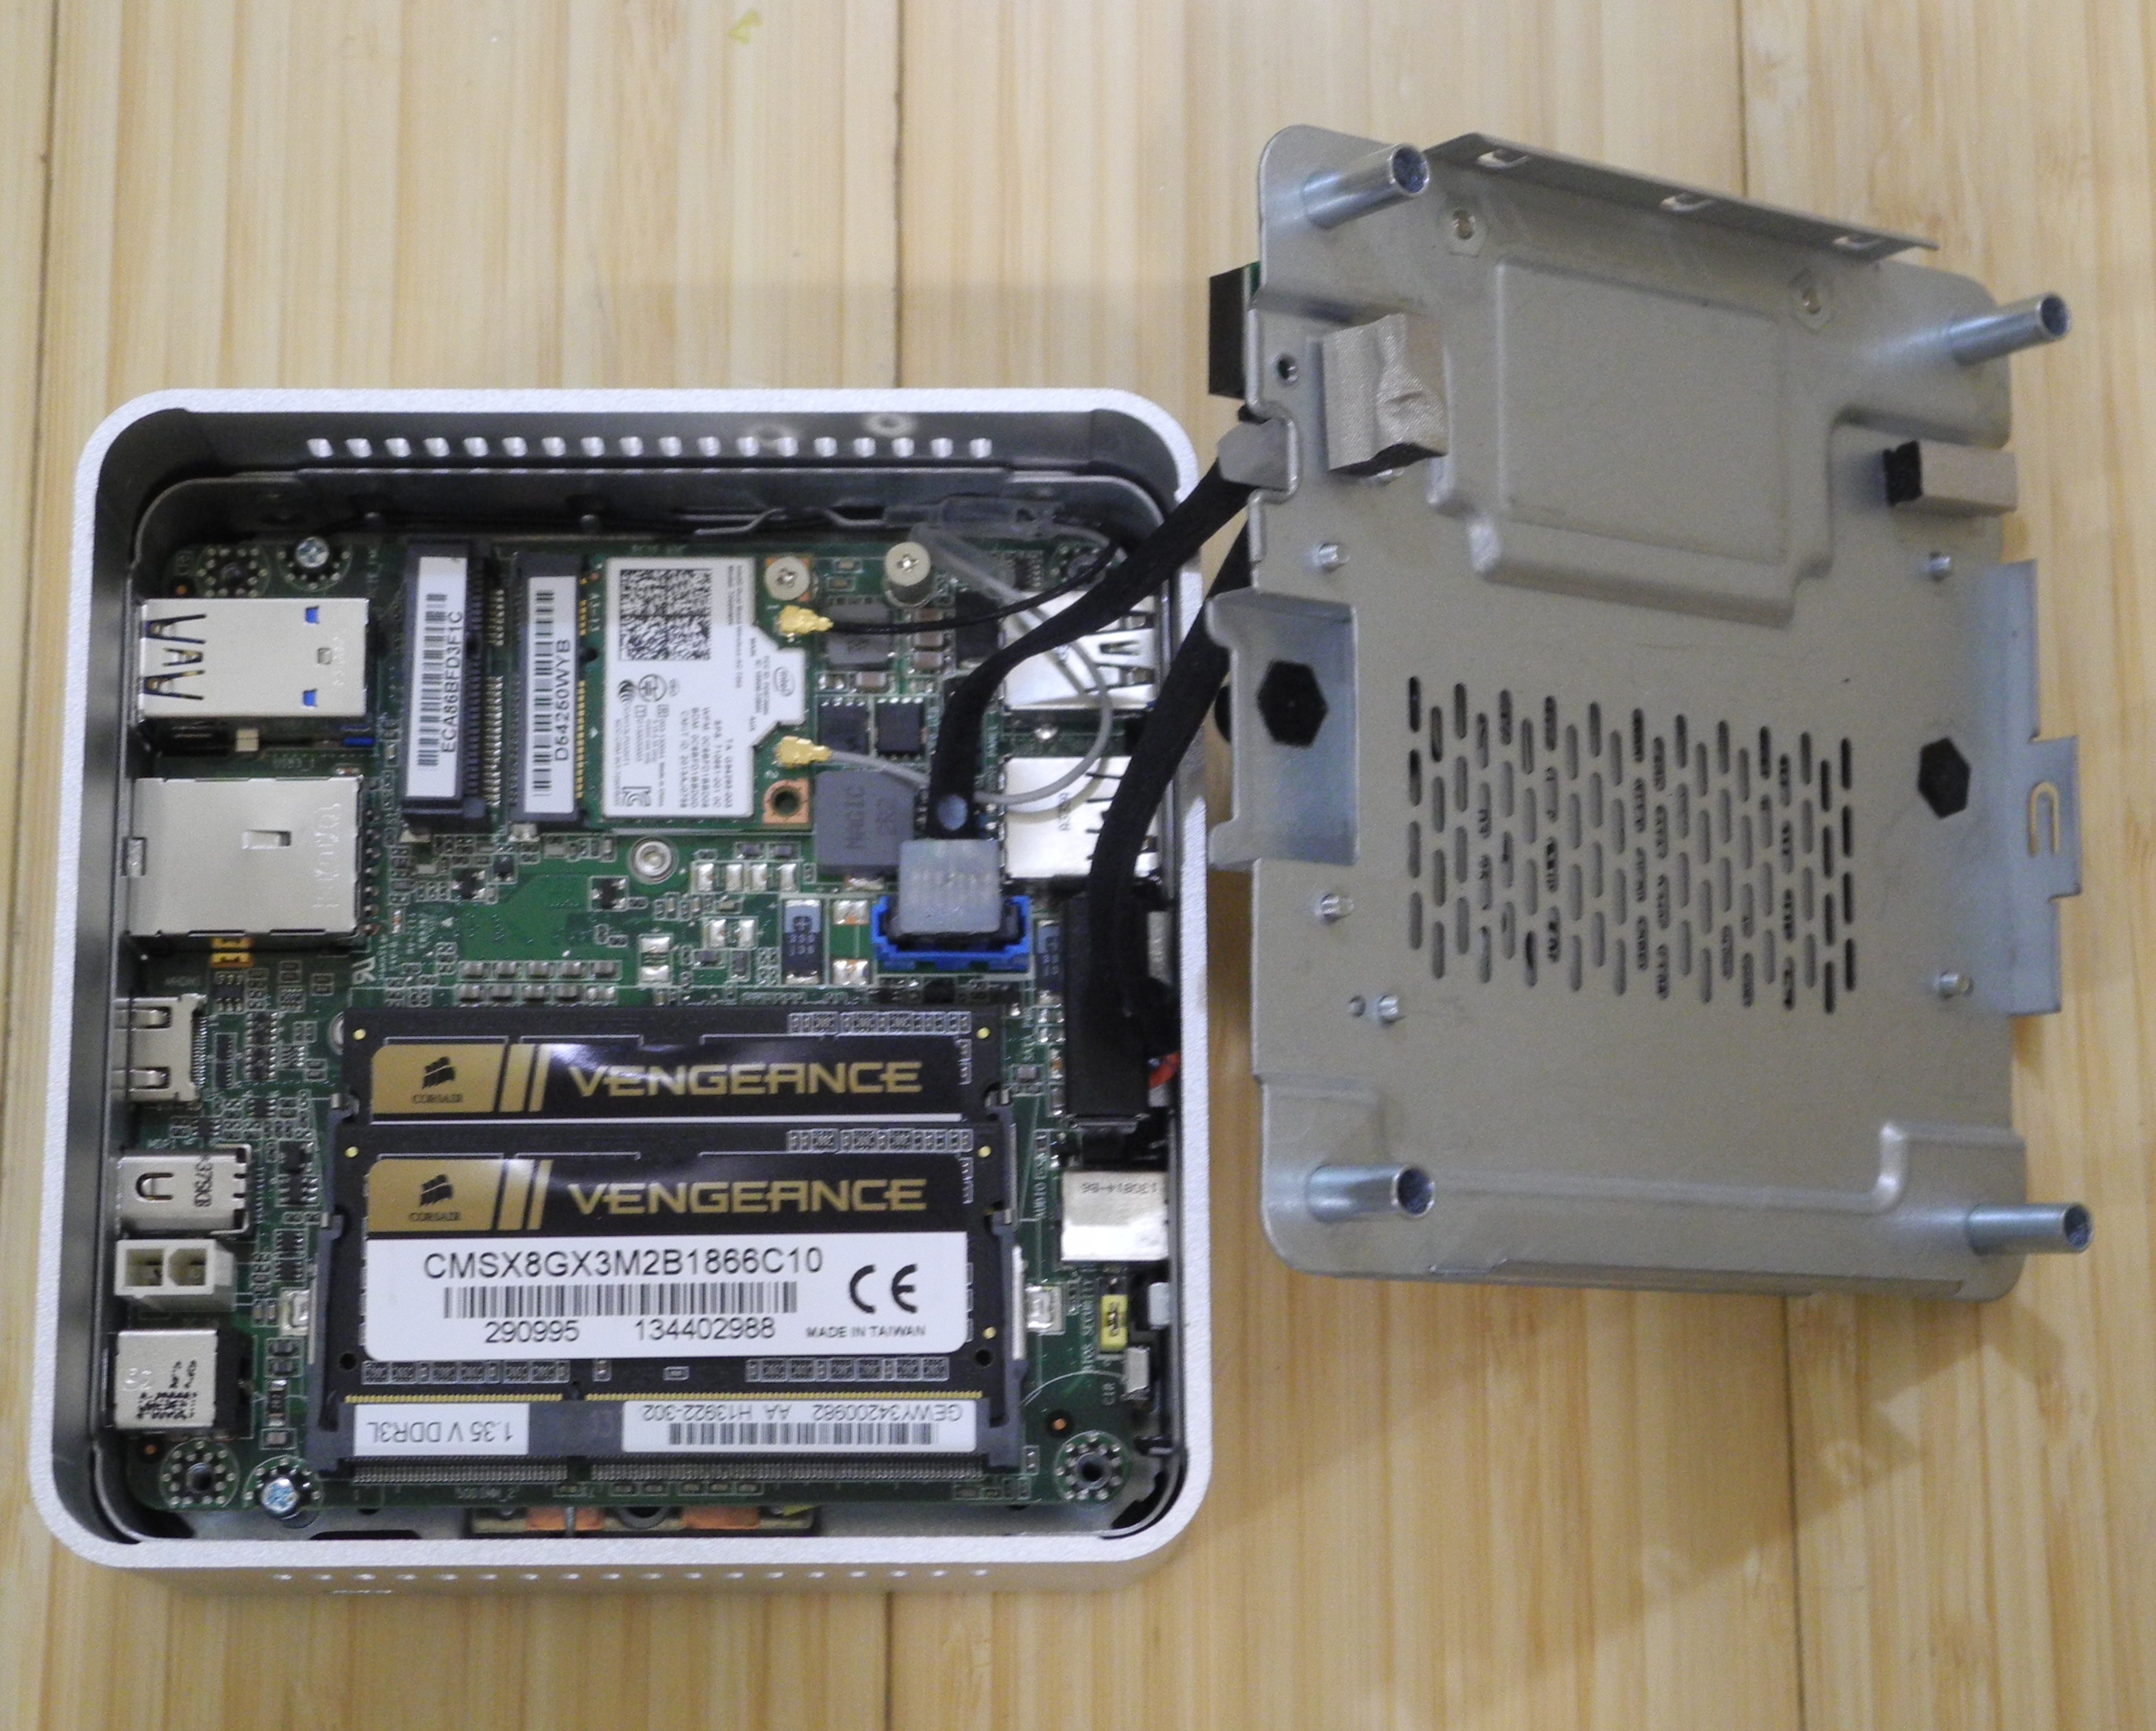 Intel D54250wykh Haswell Nuc Kit With 2 5 Quot Drive Slot Mini